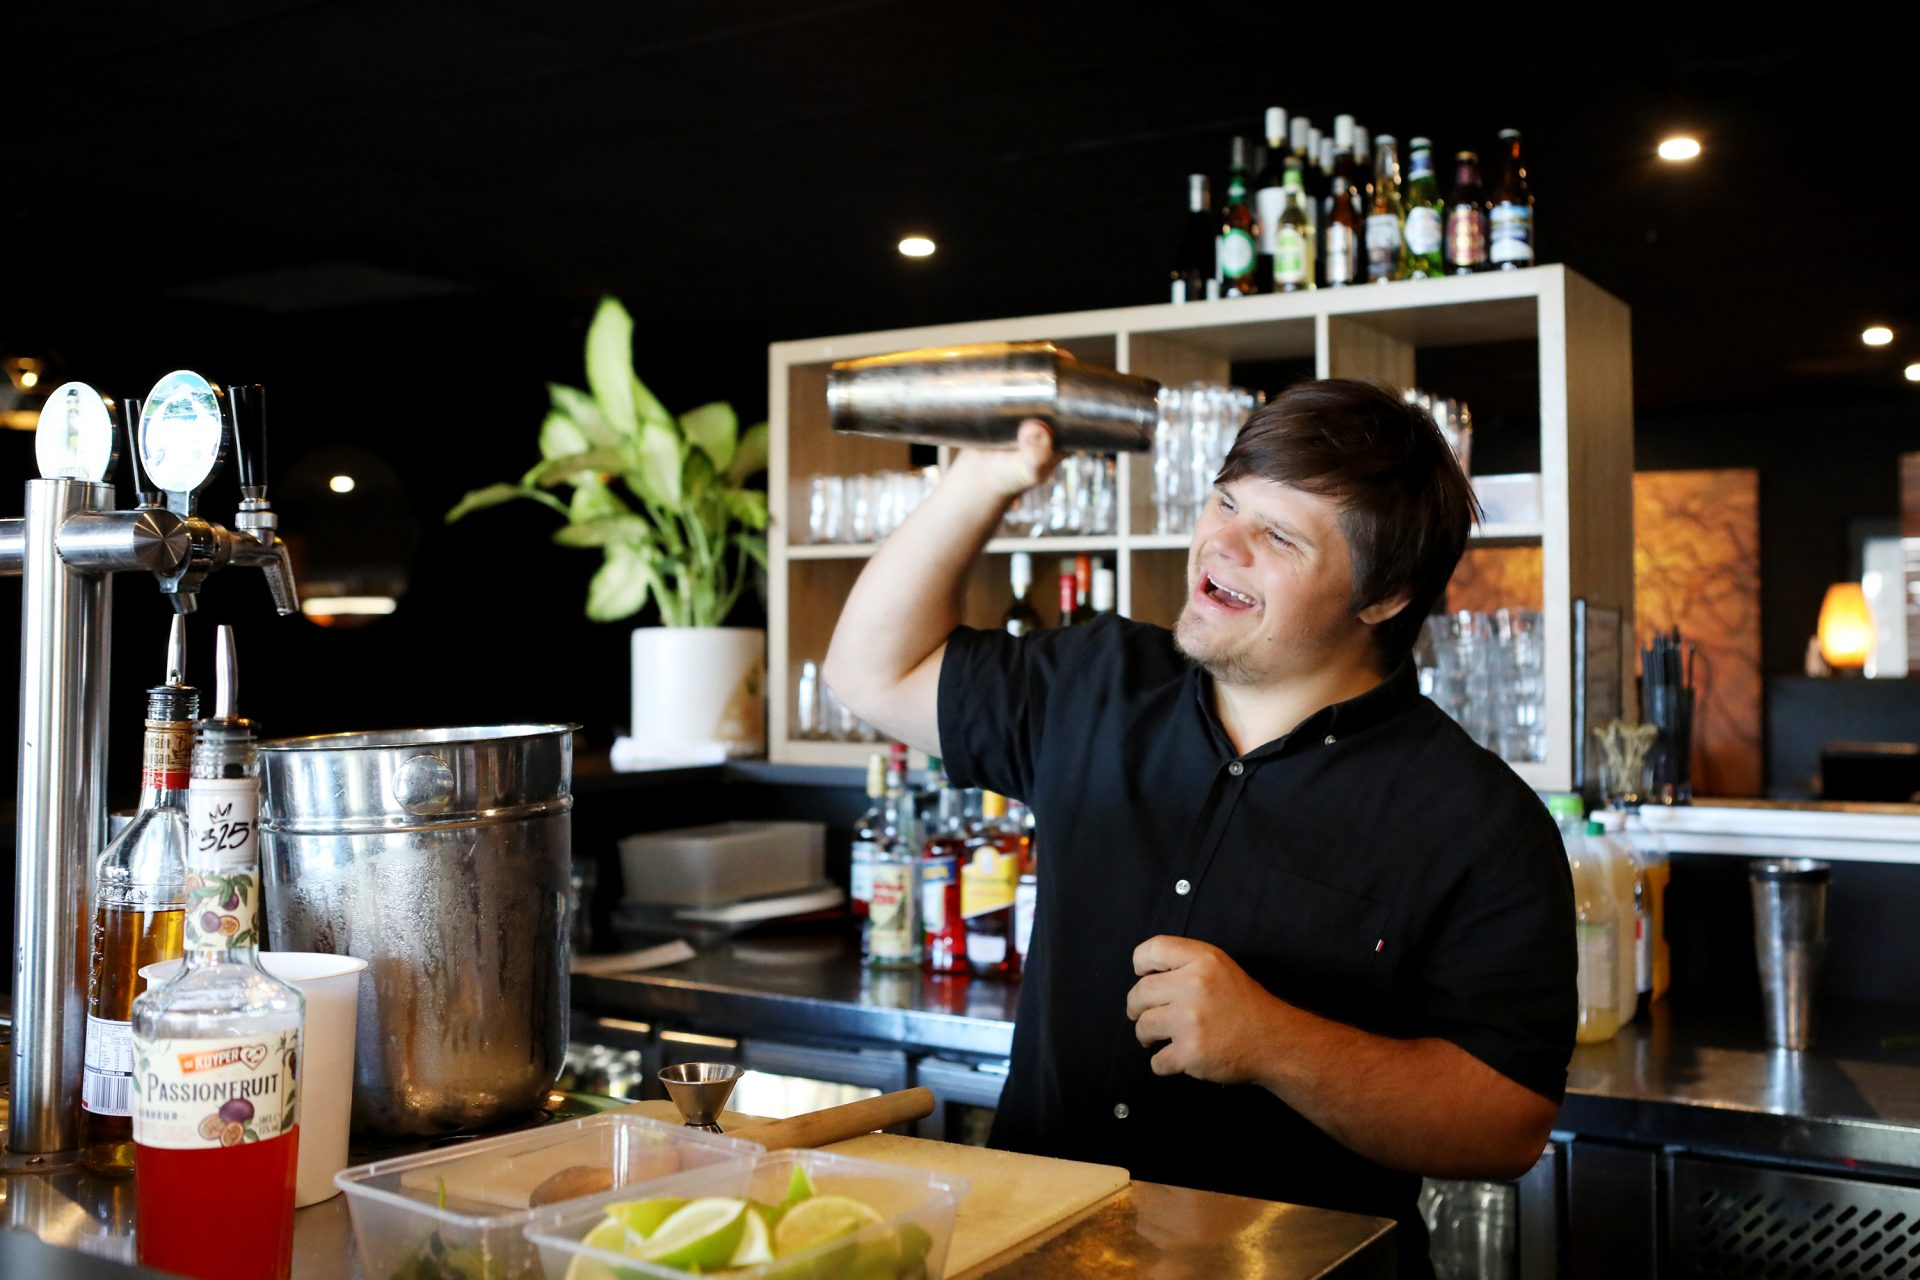 A man with Down syndrome is shaking a cocktail mixer behind a bar.